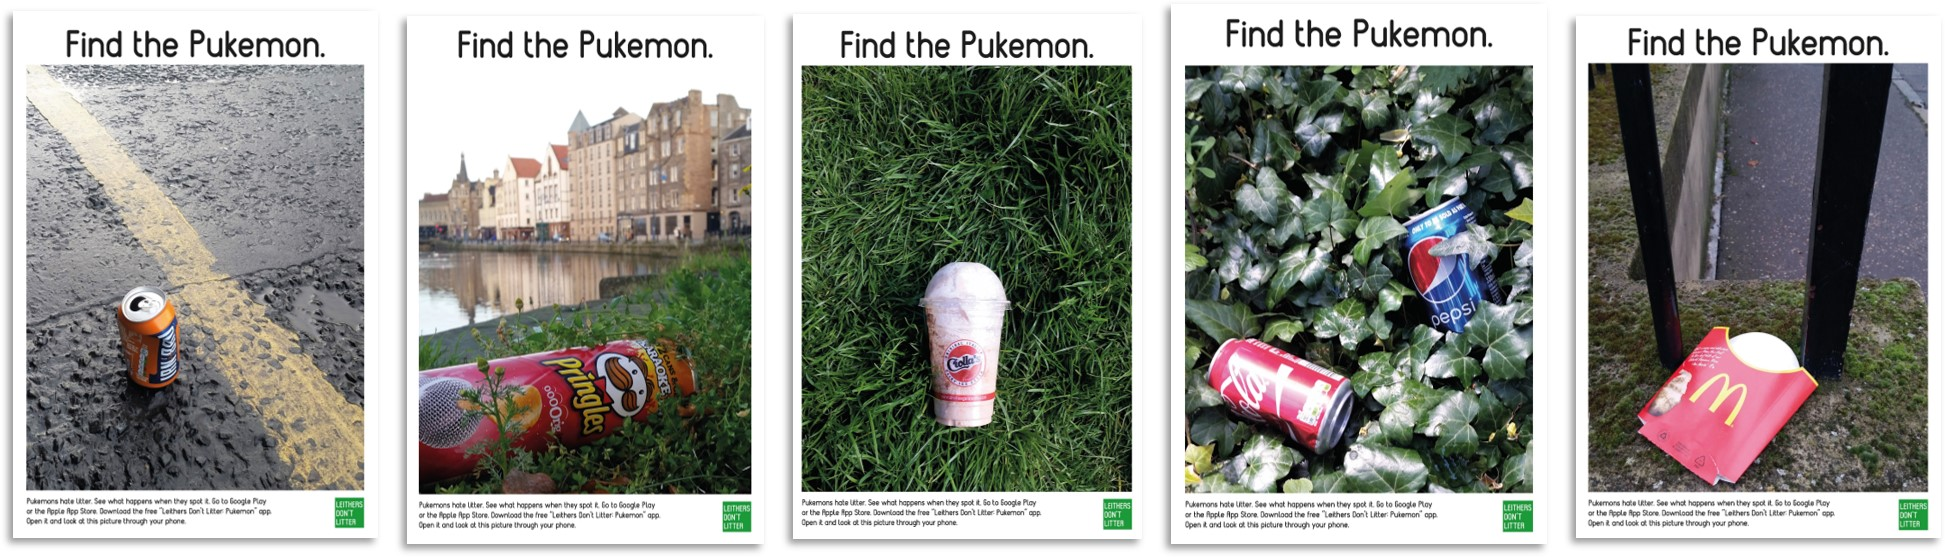 The Pukemons are hiding in these posters. Click on the photo to download the posters.